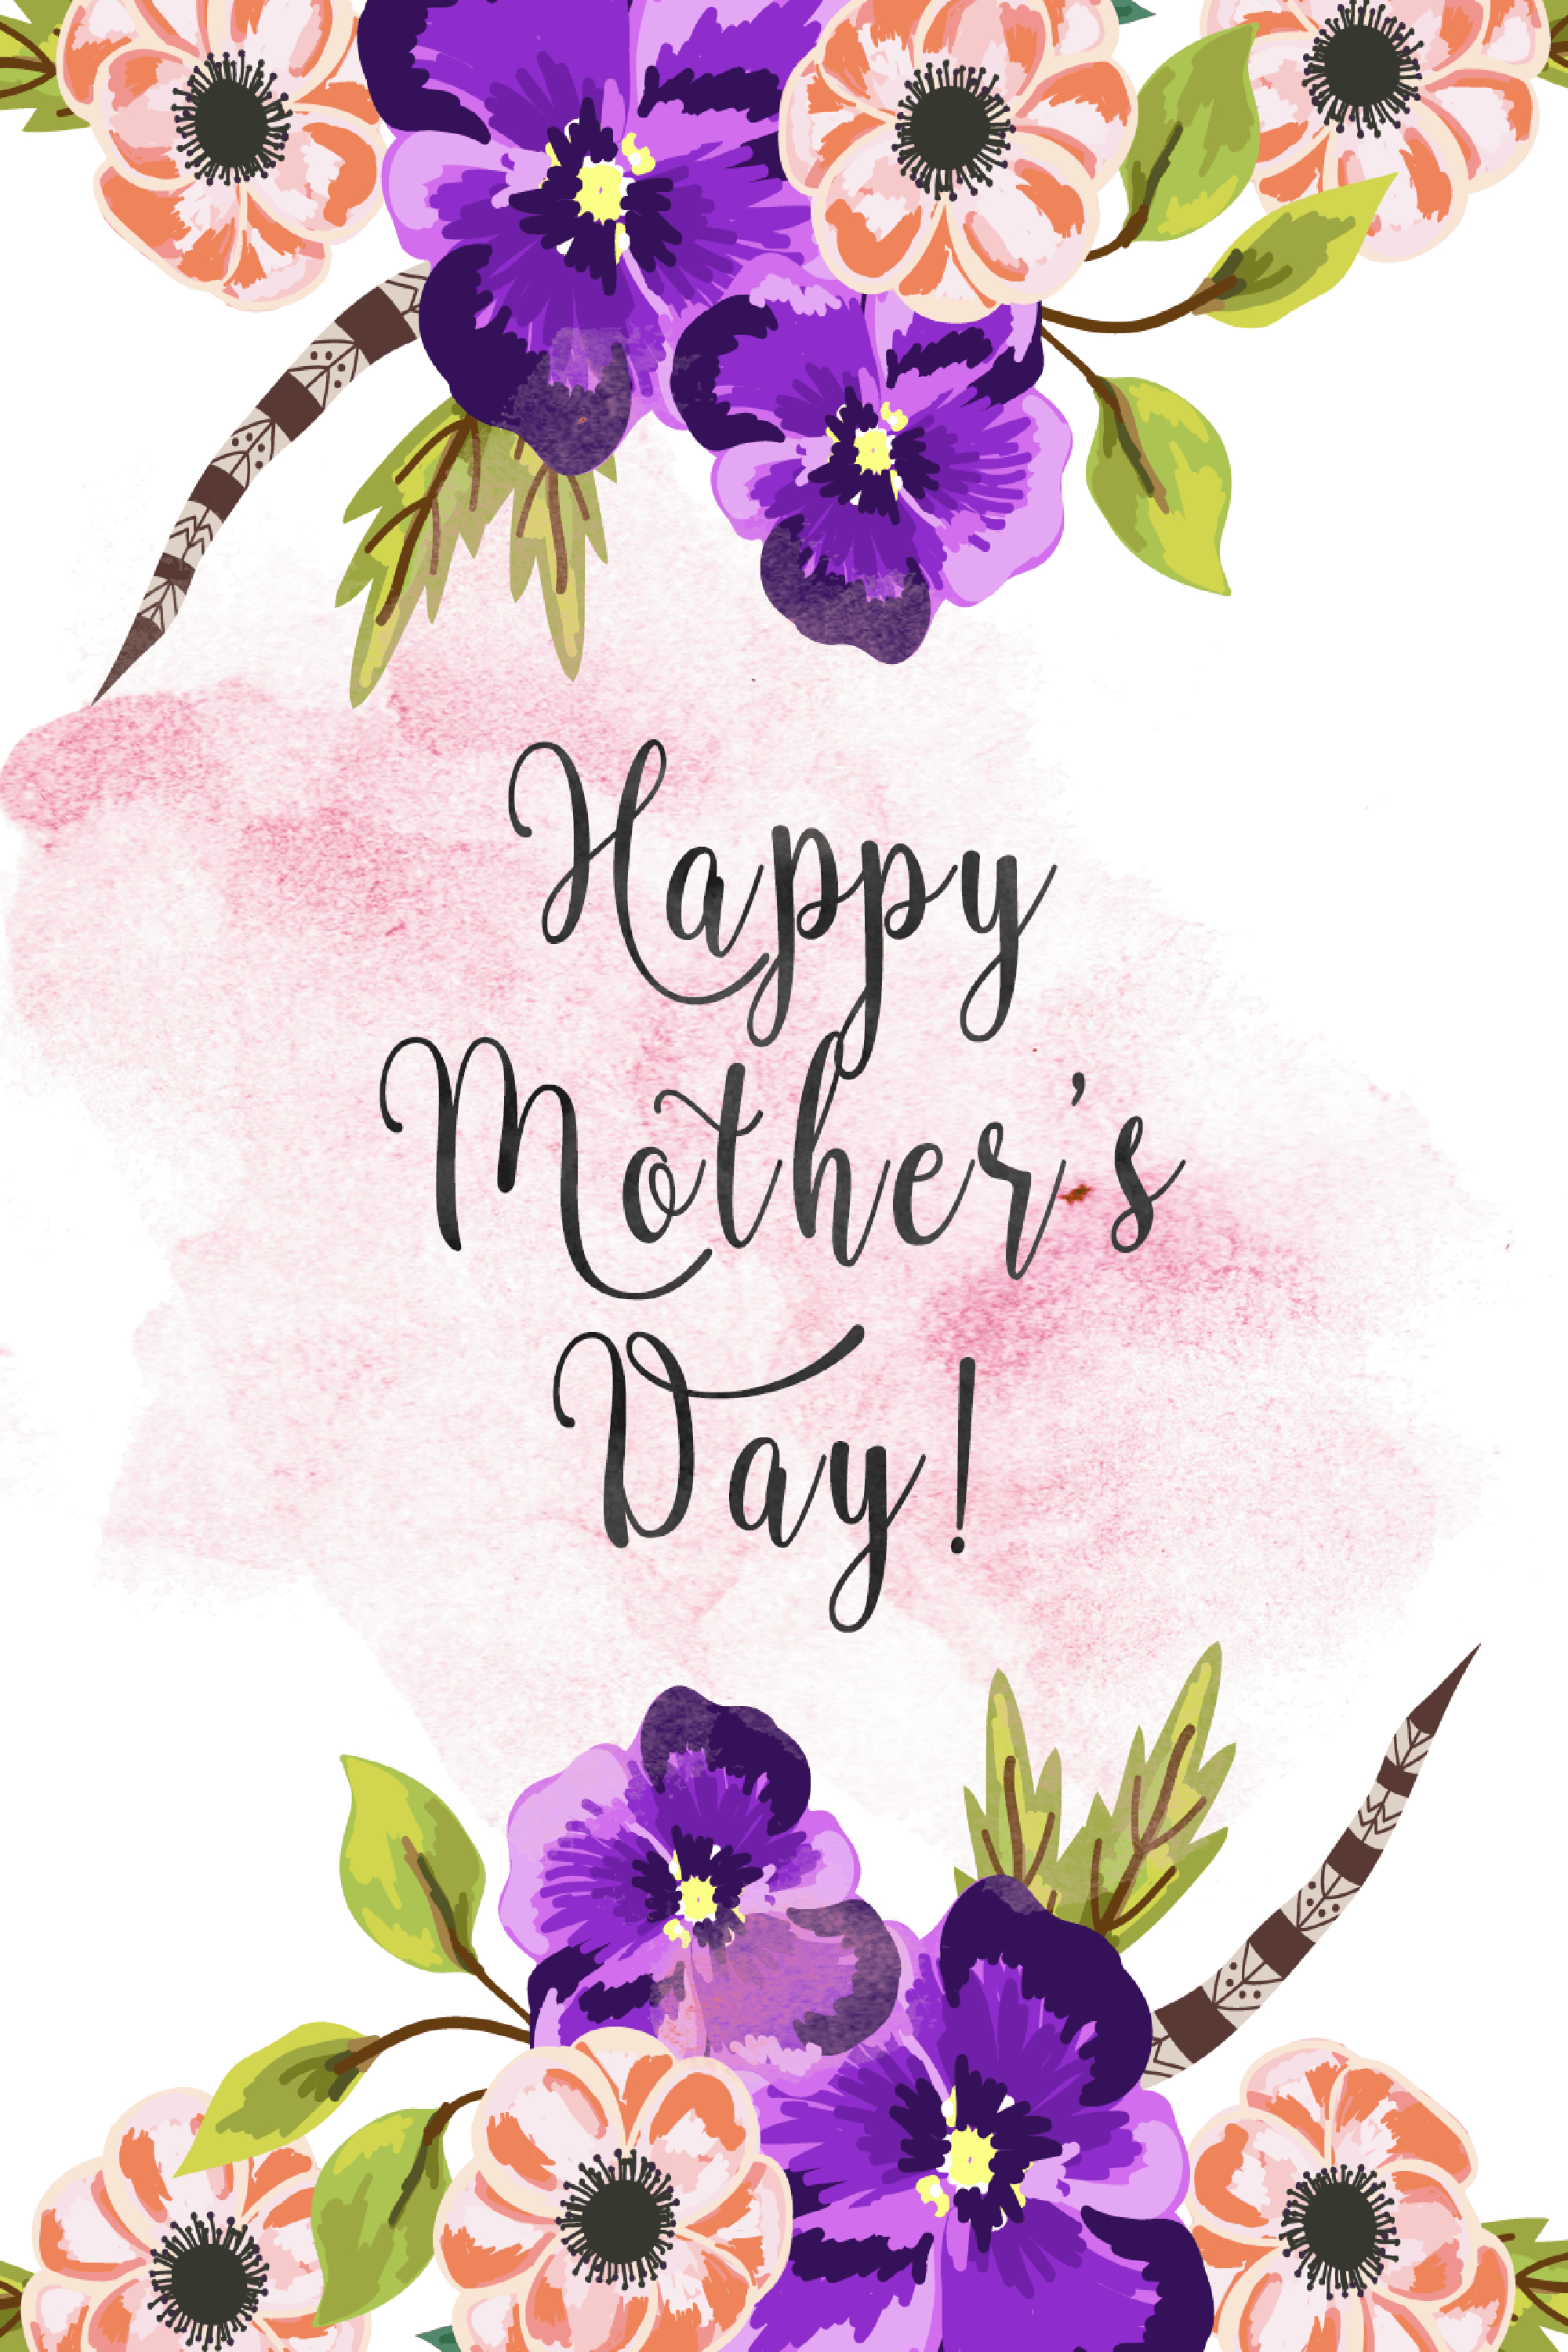 30 Cute Free Printable Mothers Day Cards - Mom Cards You Can Print - Free Printable Mothers Day Cards From The Dog